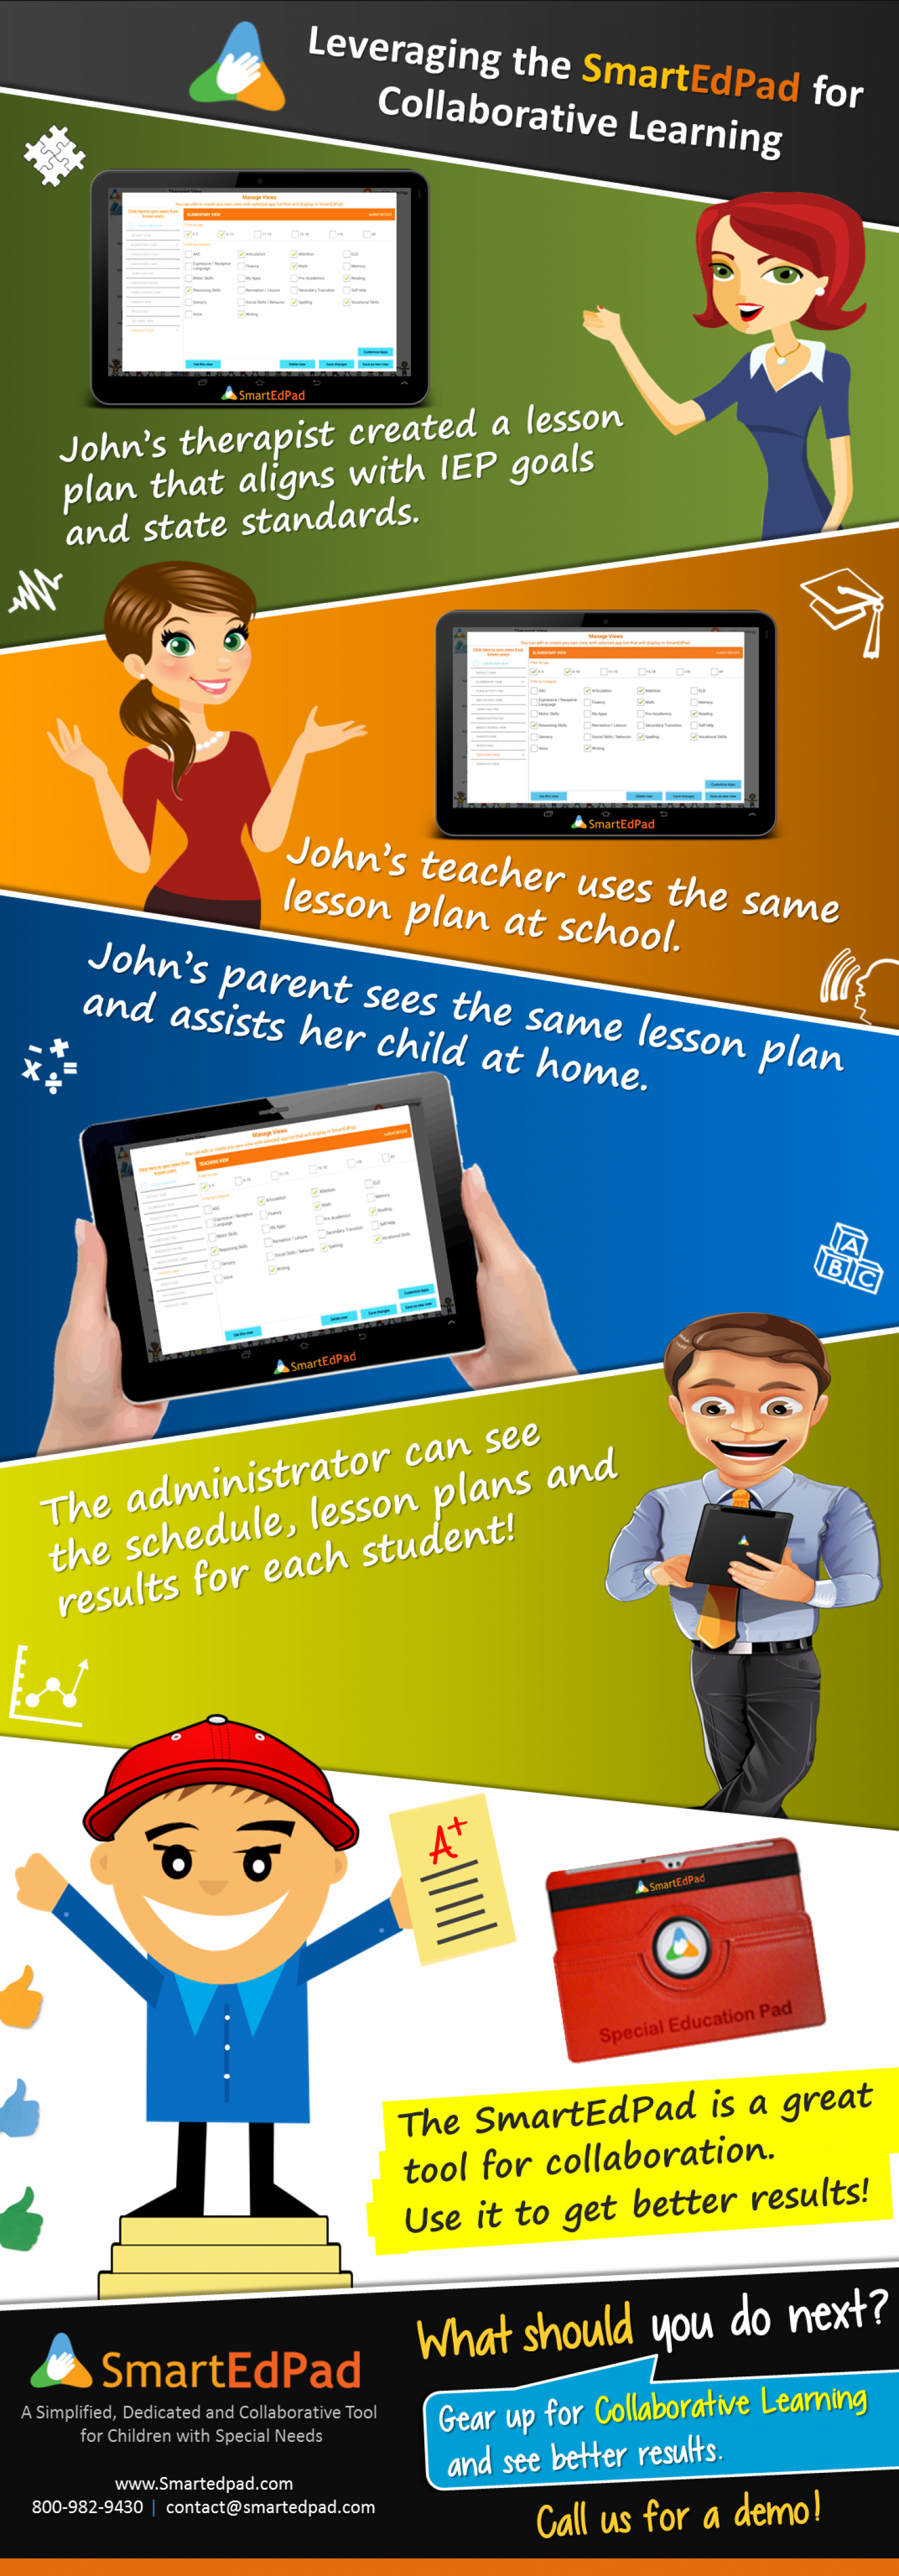 Leveraging the SmartEdPad for Collaborative Learning Infographic